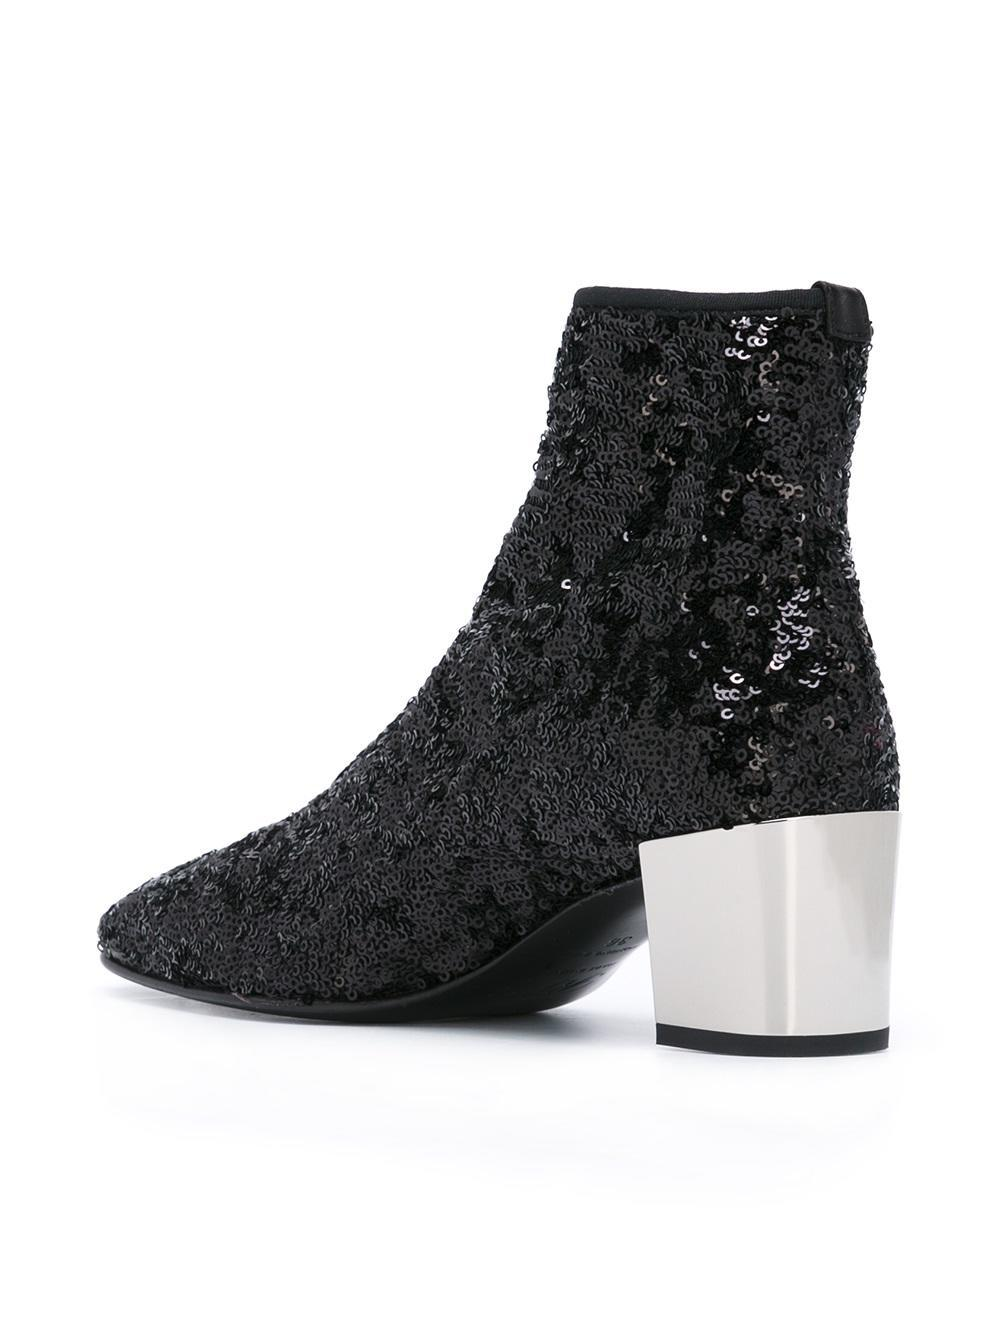 Roger Vivier Leather Polly Ankle Boots With Sequins In